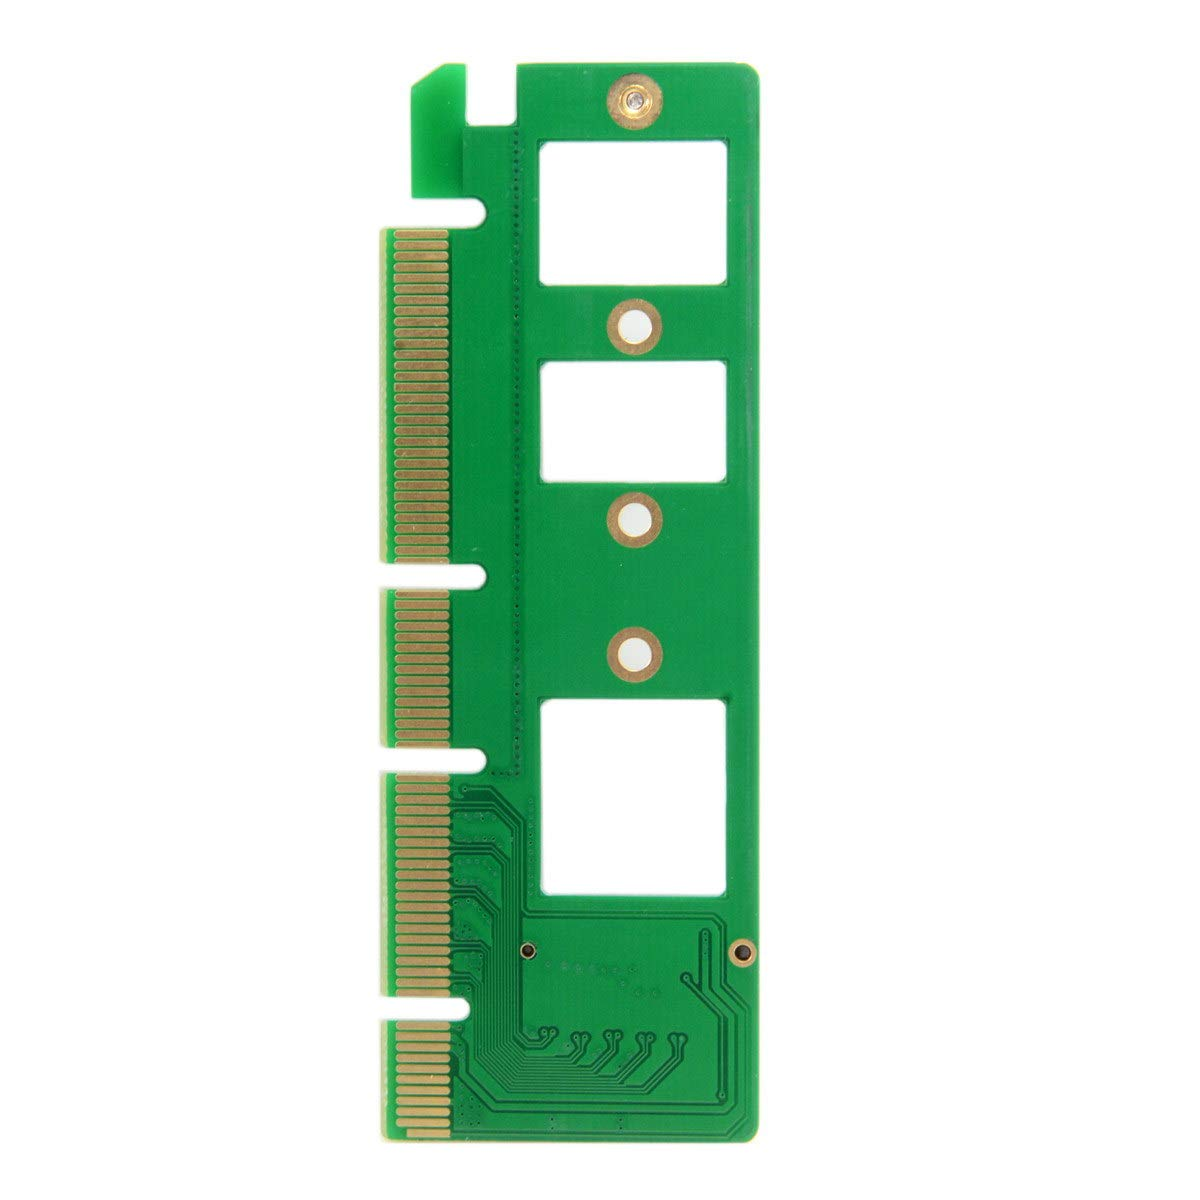 Cablecc NGFF M-Key NVME AHCI SSD to PCI-E 3.0 16x x4 Adapter for XP941 SM951 PM951 A110 m6e 960 EVO SSD by cablecc (Image #3)